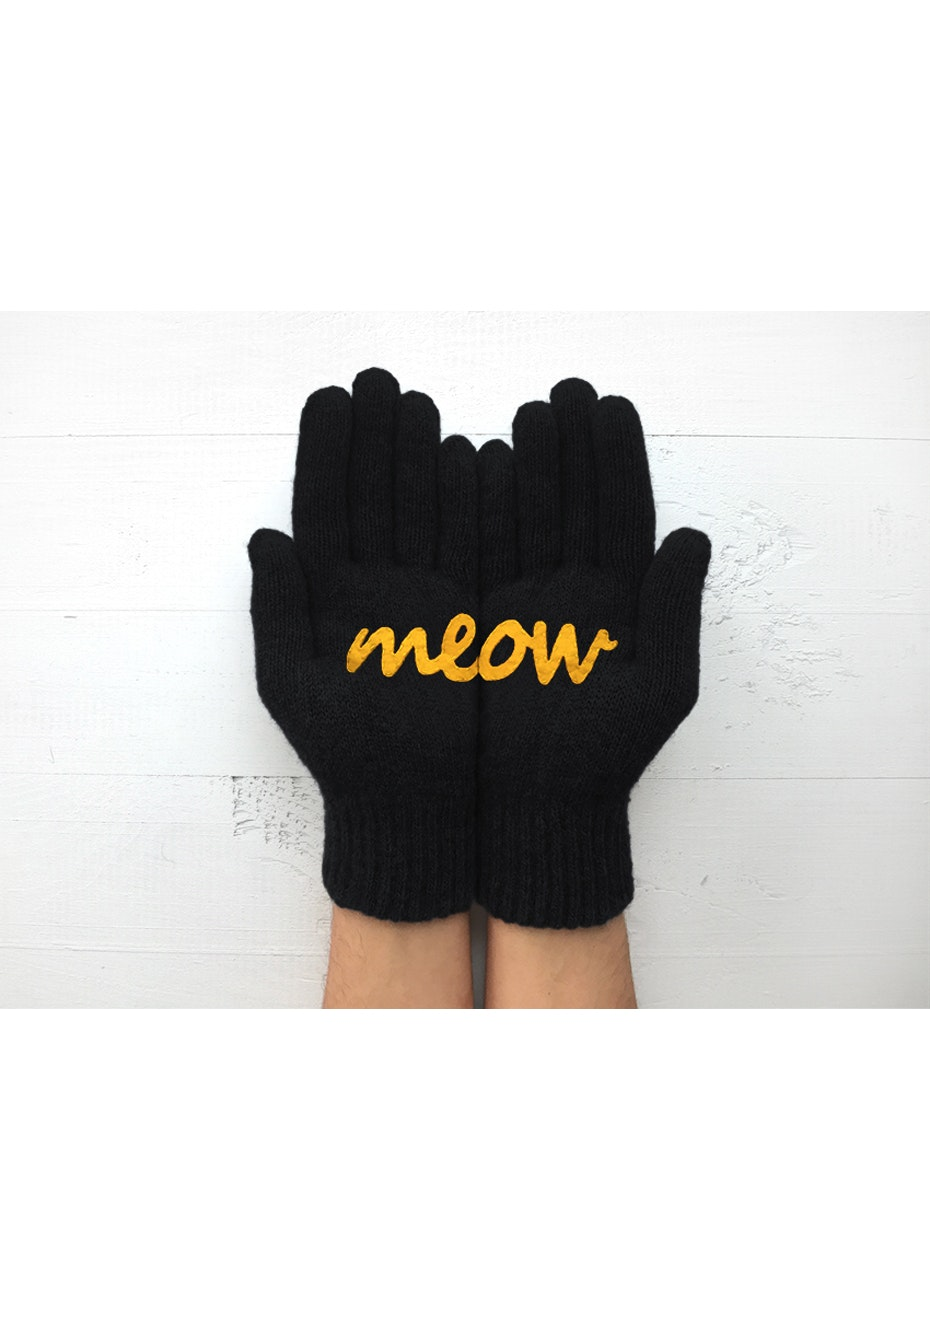 Meow Gloves - Black